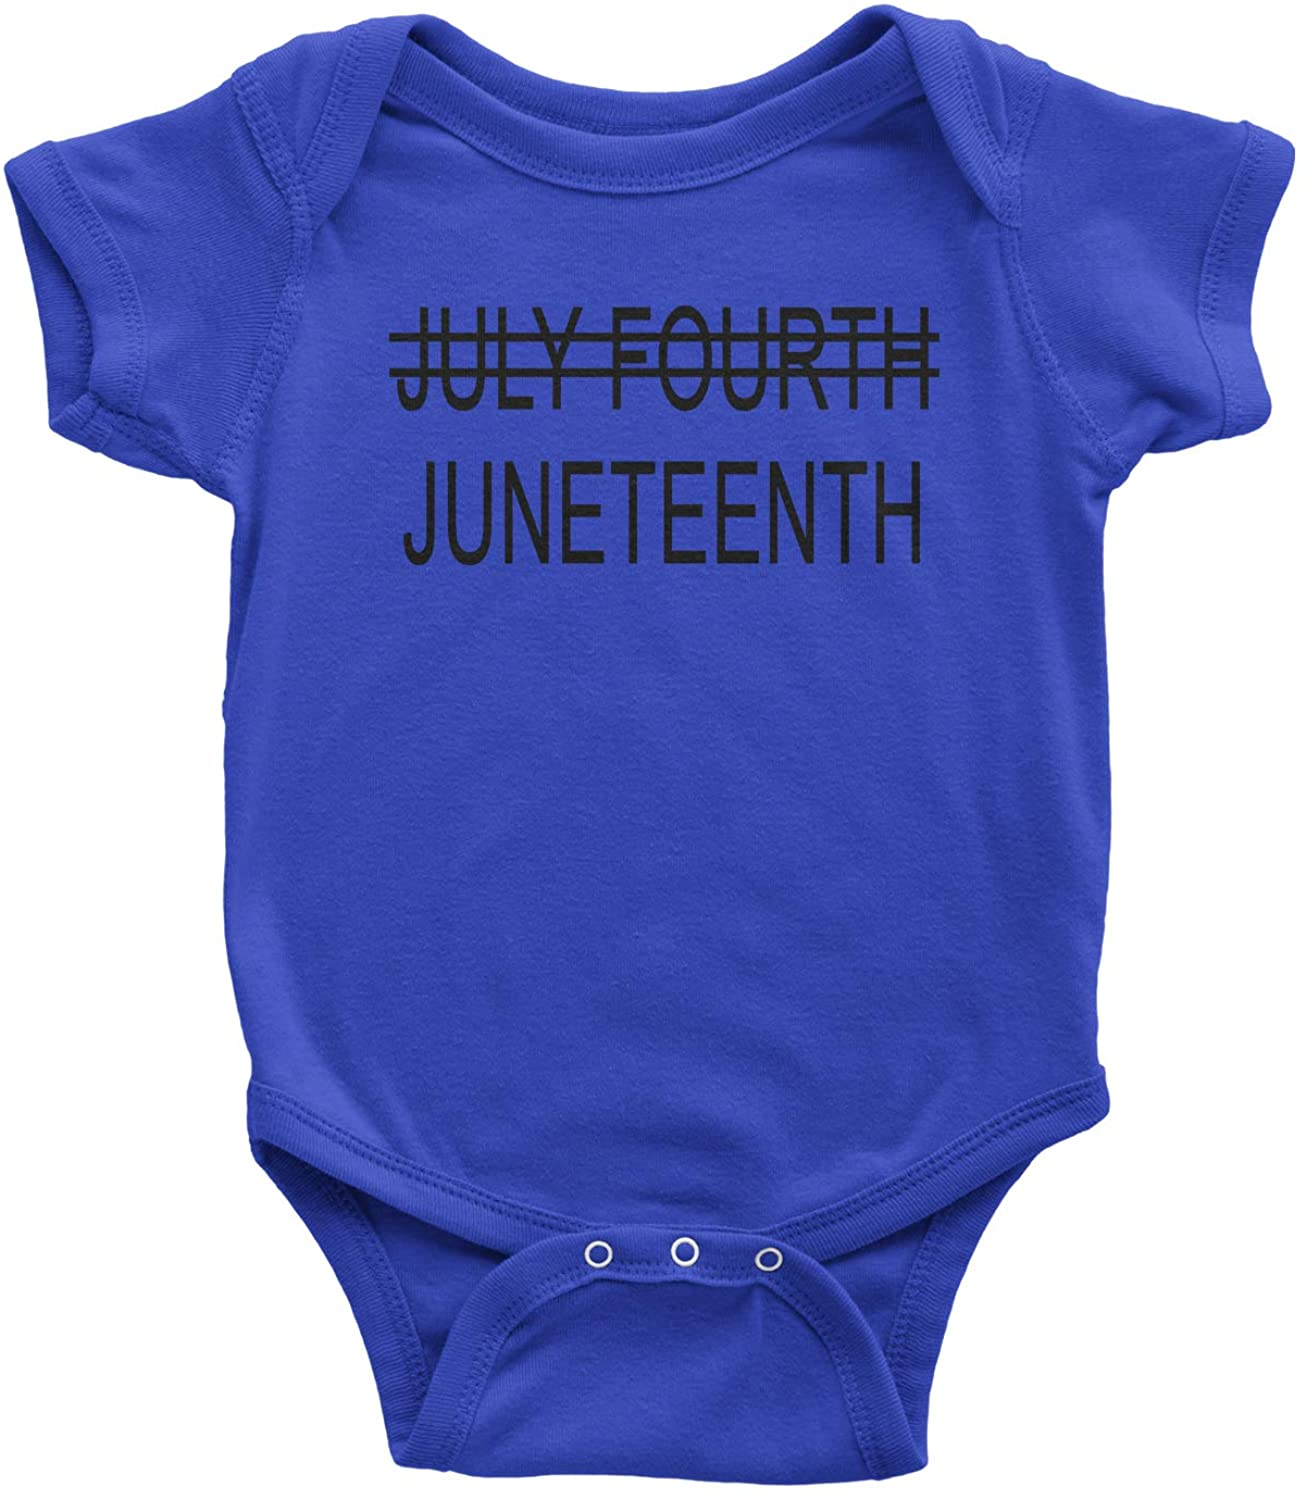 Expression Tees Juneteenth (July Fourth Crossed Out) Infant One-Piece Romper Bodysuit